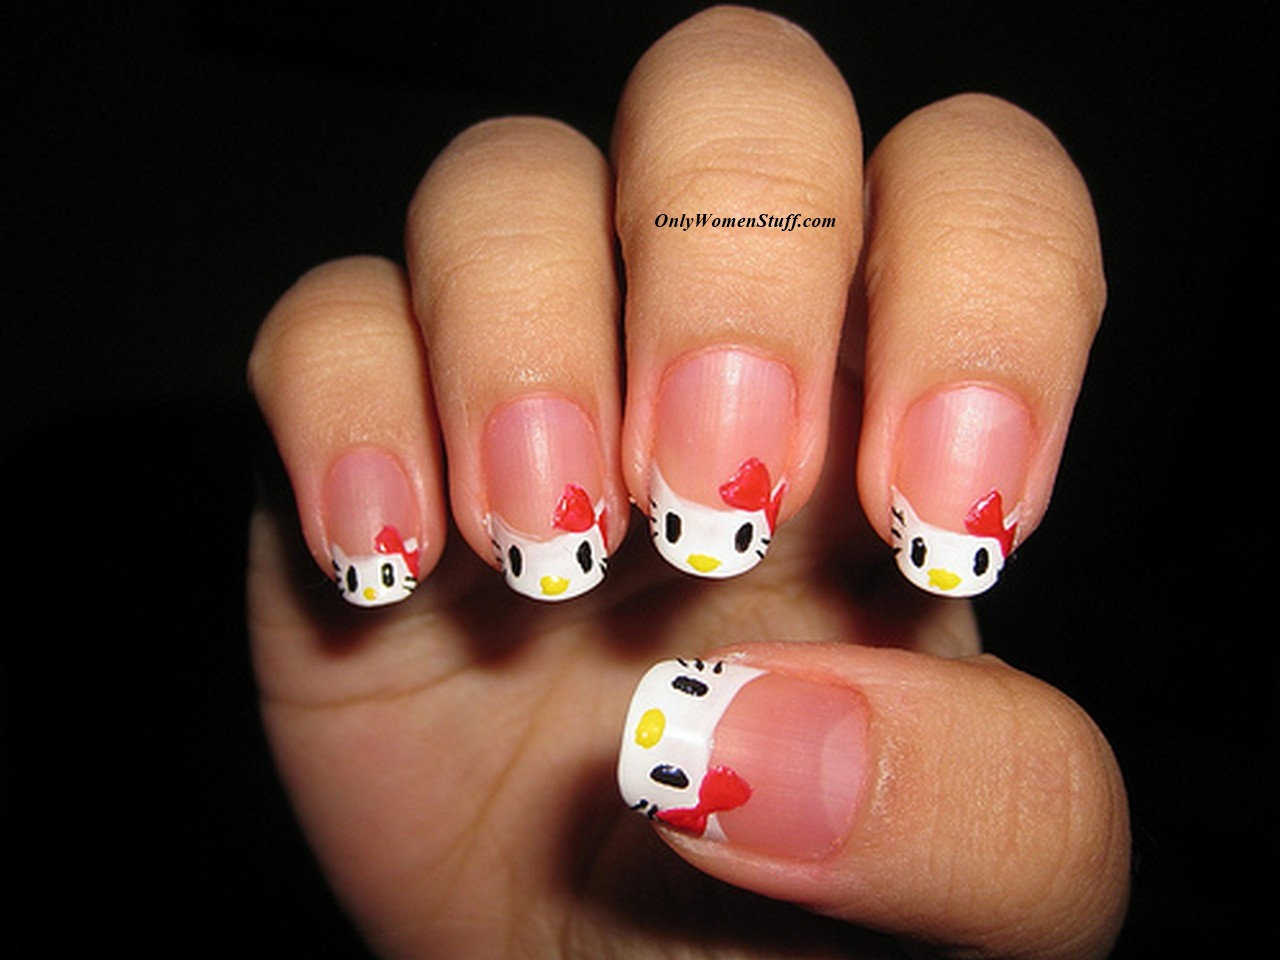 nail designs for kids nail designs for kids easy cute nail designs for kids with short nails kid nail designs do yourself kid nails easy nail designs for kids with short nails easy nail designs for kids to do at home nail designs for kids step by step